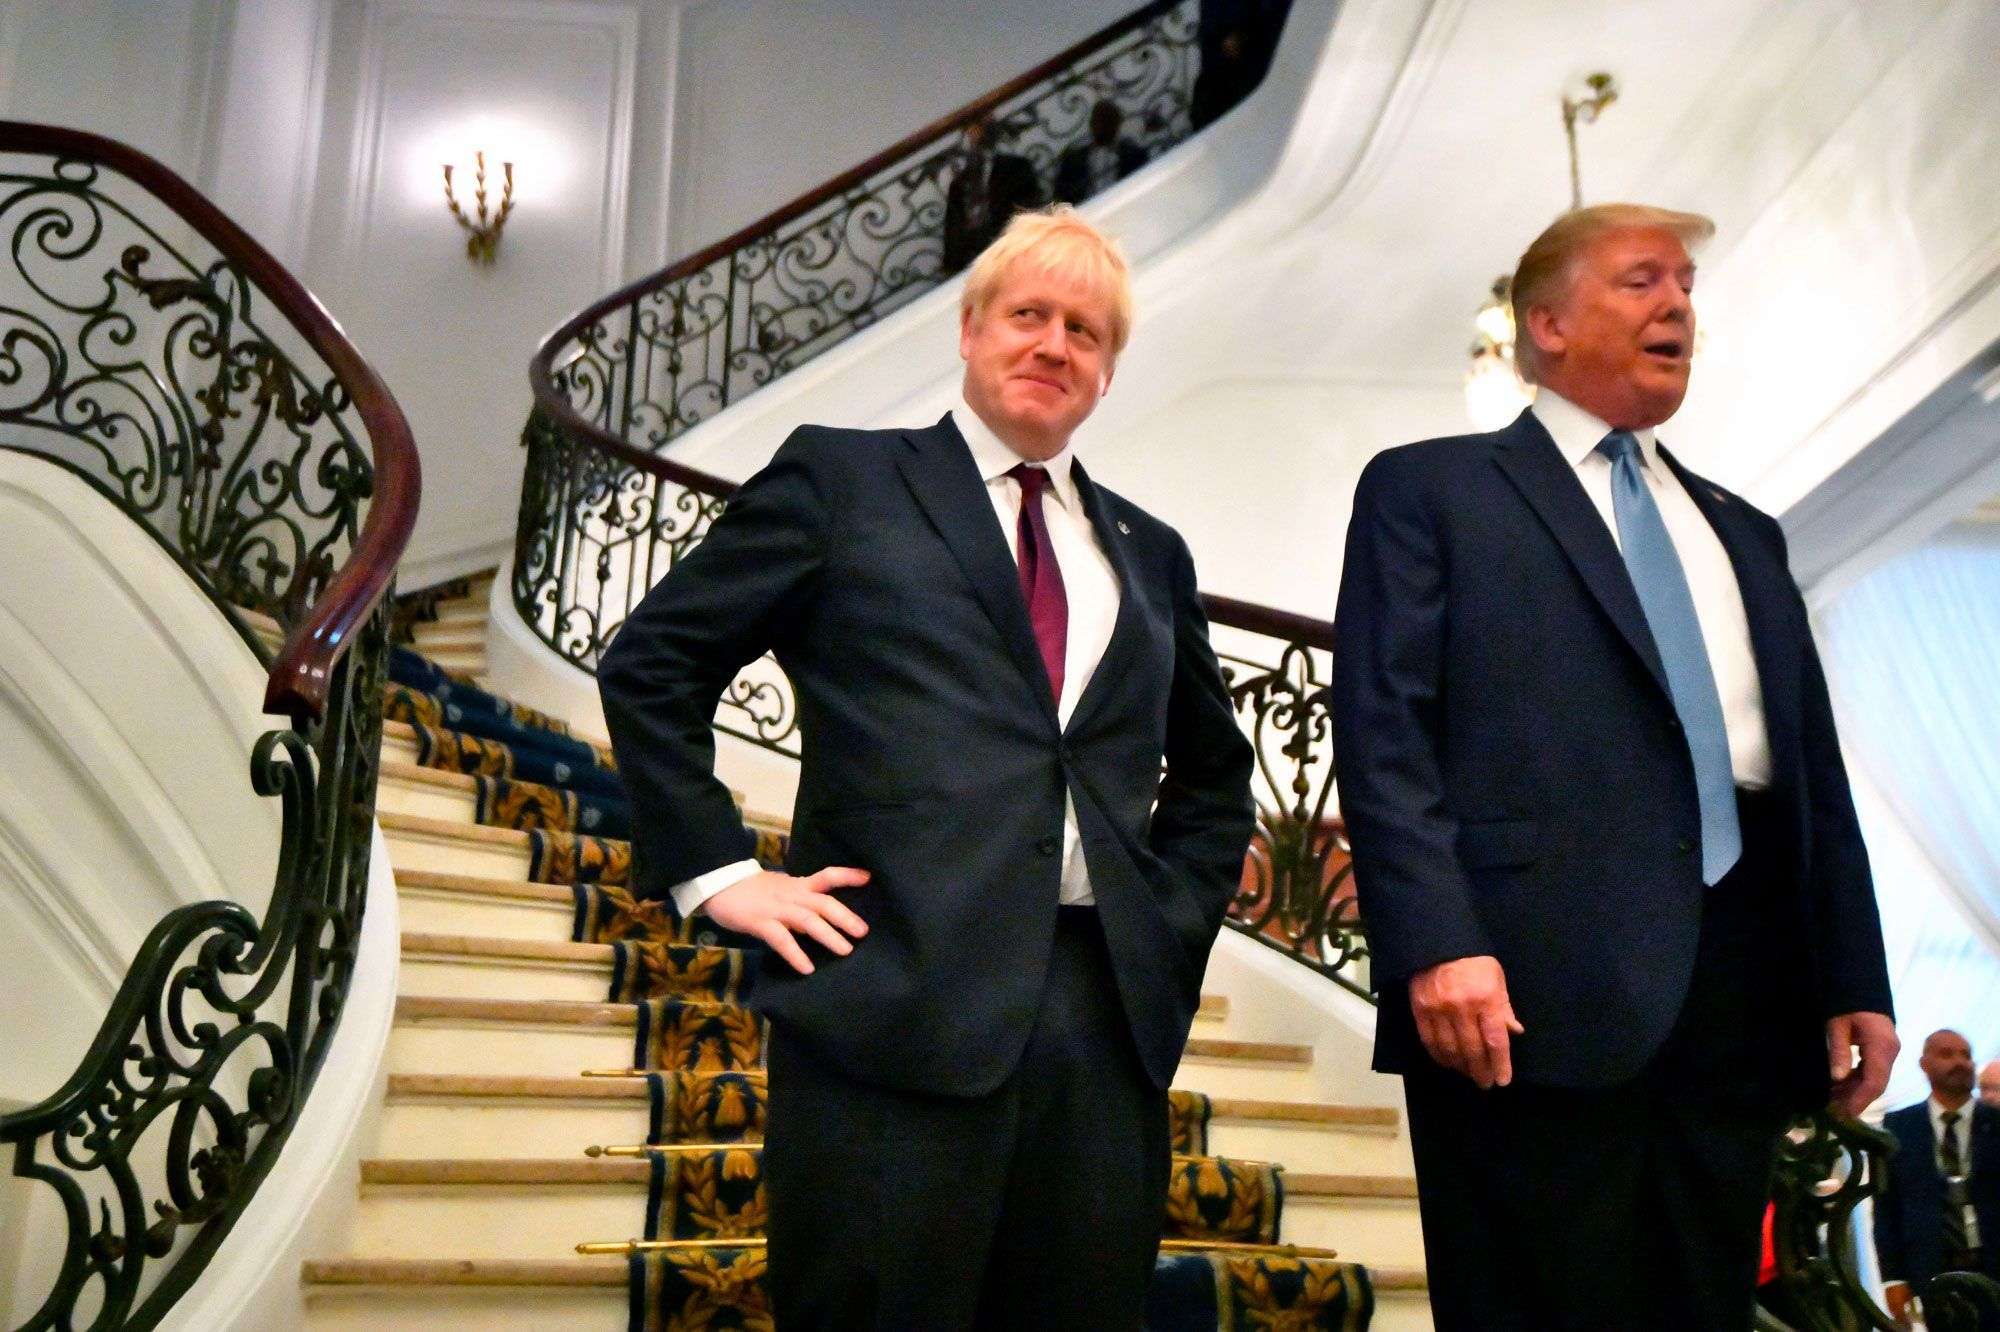 Au-G7-Donald-Trump-a-un-nouvel-ami-Boris-Johnson.jpg